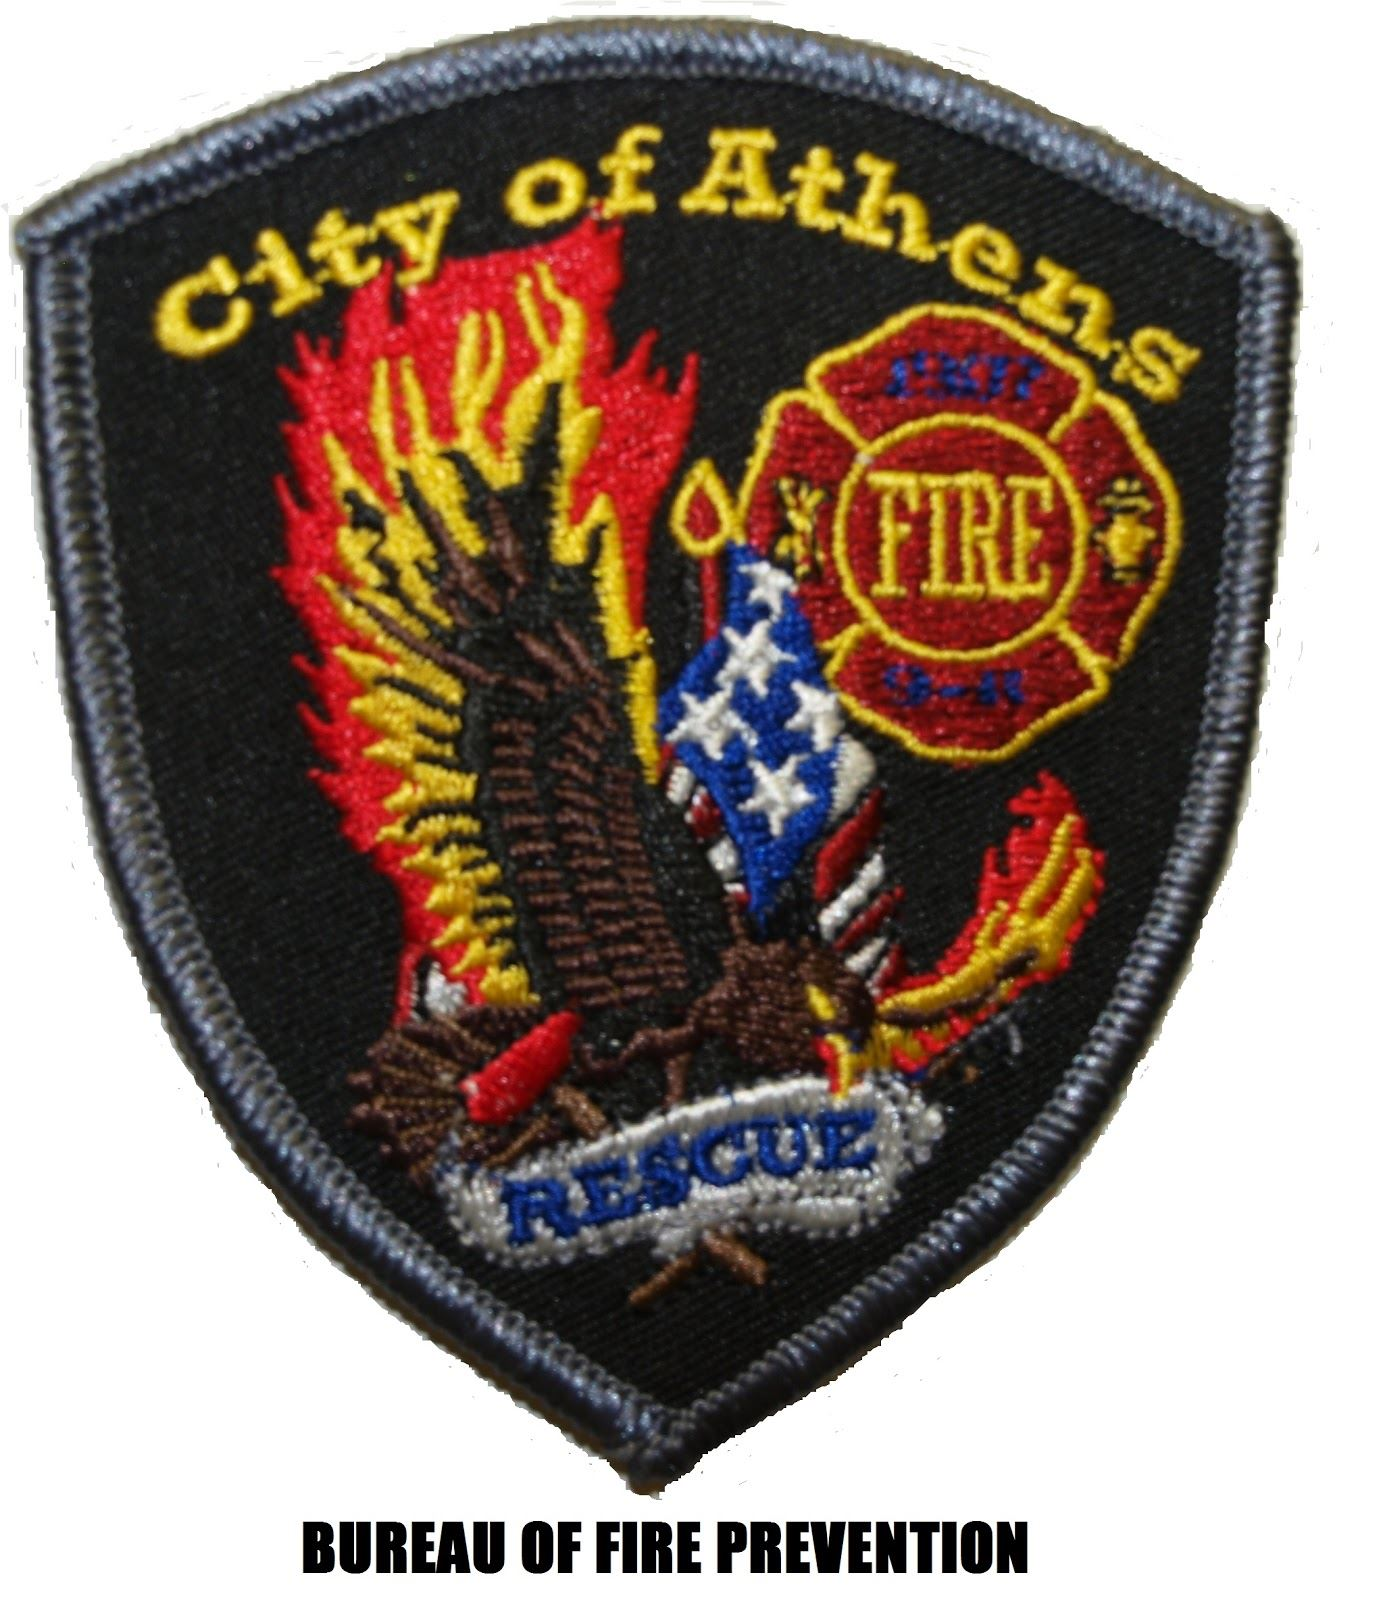 Bureau of Fire Prevention Badge with eagle and American flag